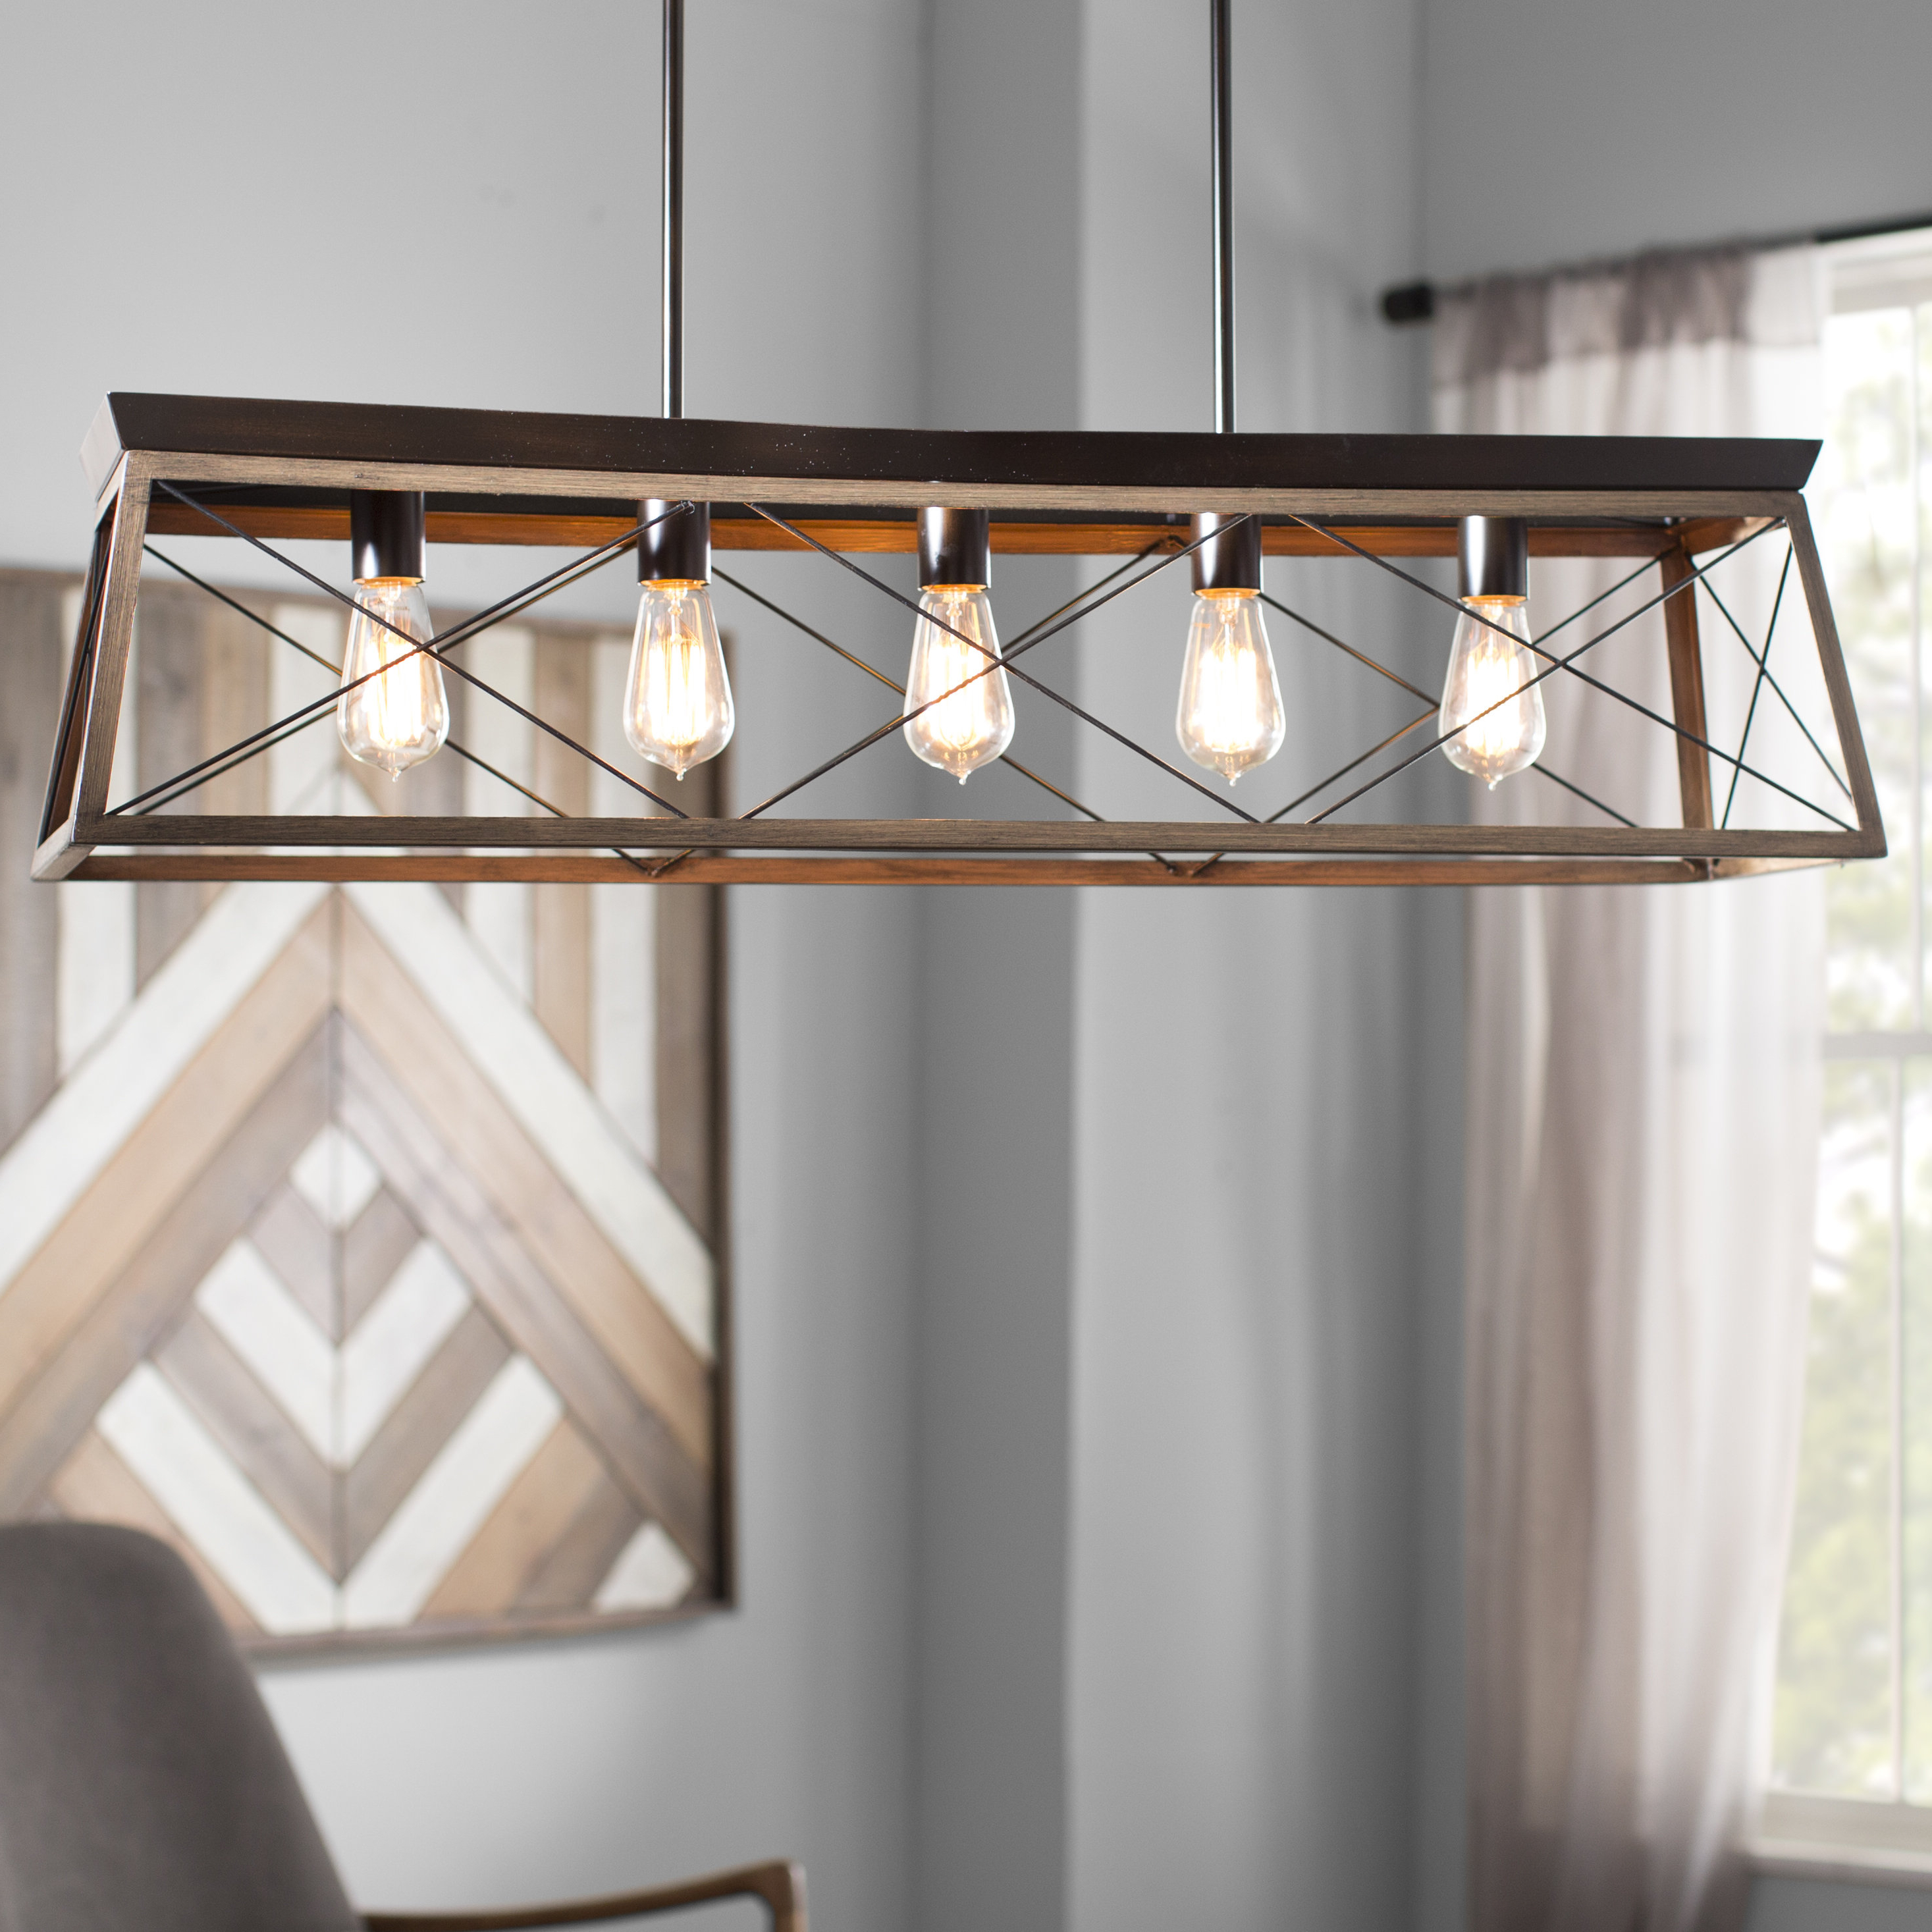 Most Current Laurel Foundry Modern Farmhouse Delon 5 Light Kitchen Island In Delon 5 Light Kitchen Island Linear Pendants (View 12 of 20)